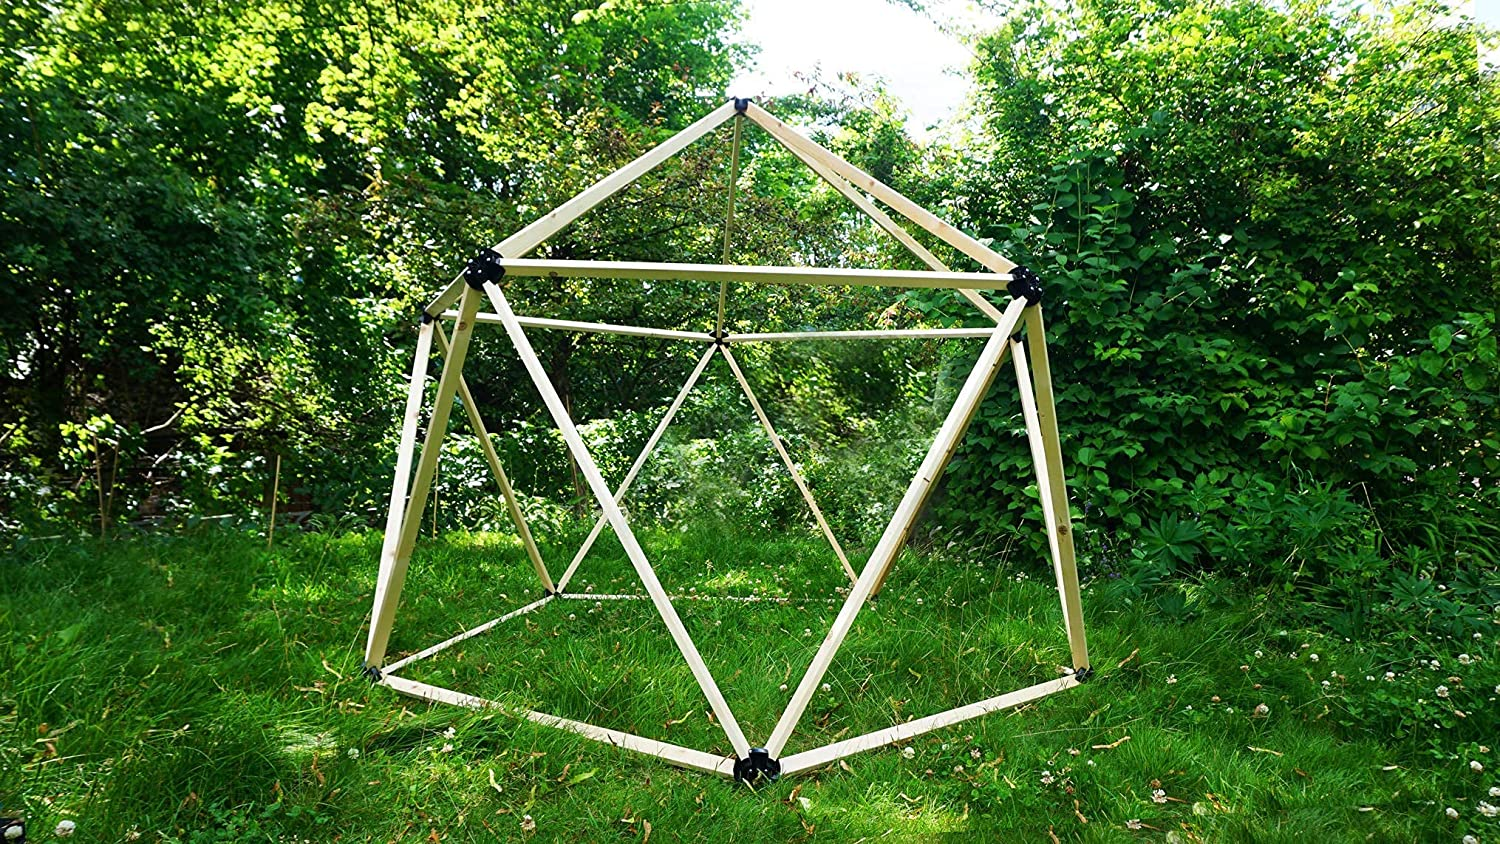 Magidome #1 Geodesic Dome Connectors: Build a DIY Geodesic Greenhouse, Yurt, Tent, Trellis, Hoop House, Cold Frame for Gardening, Meditation, Yoga, Camping and Festivals